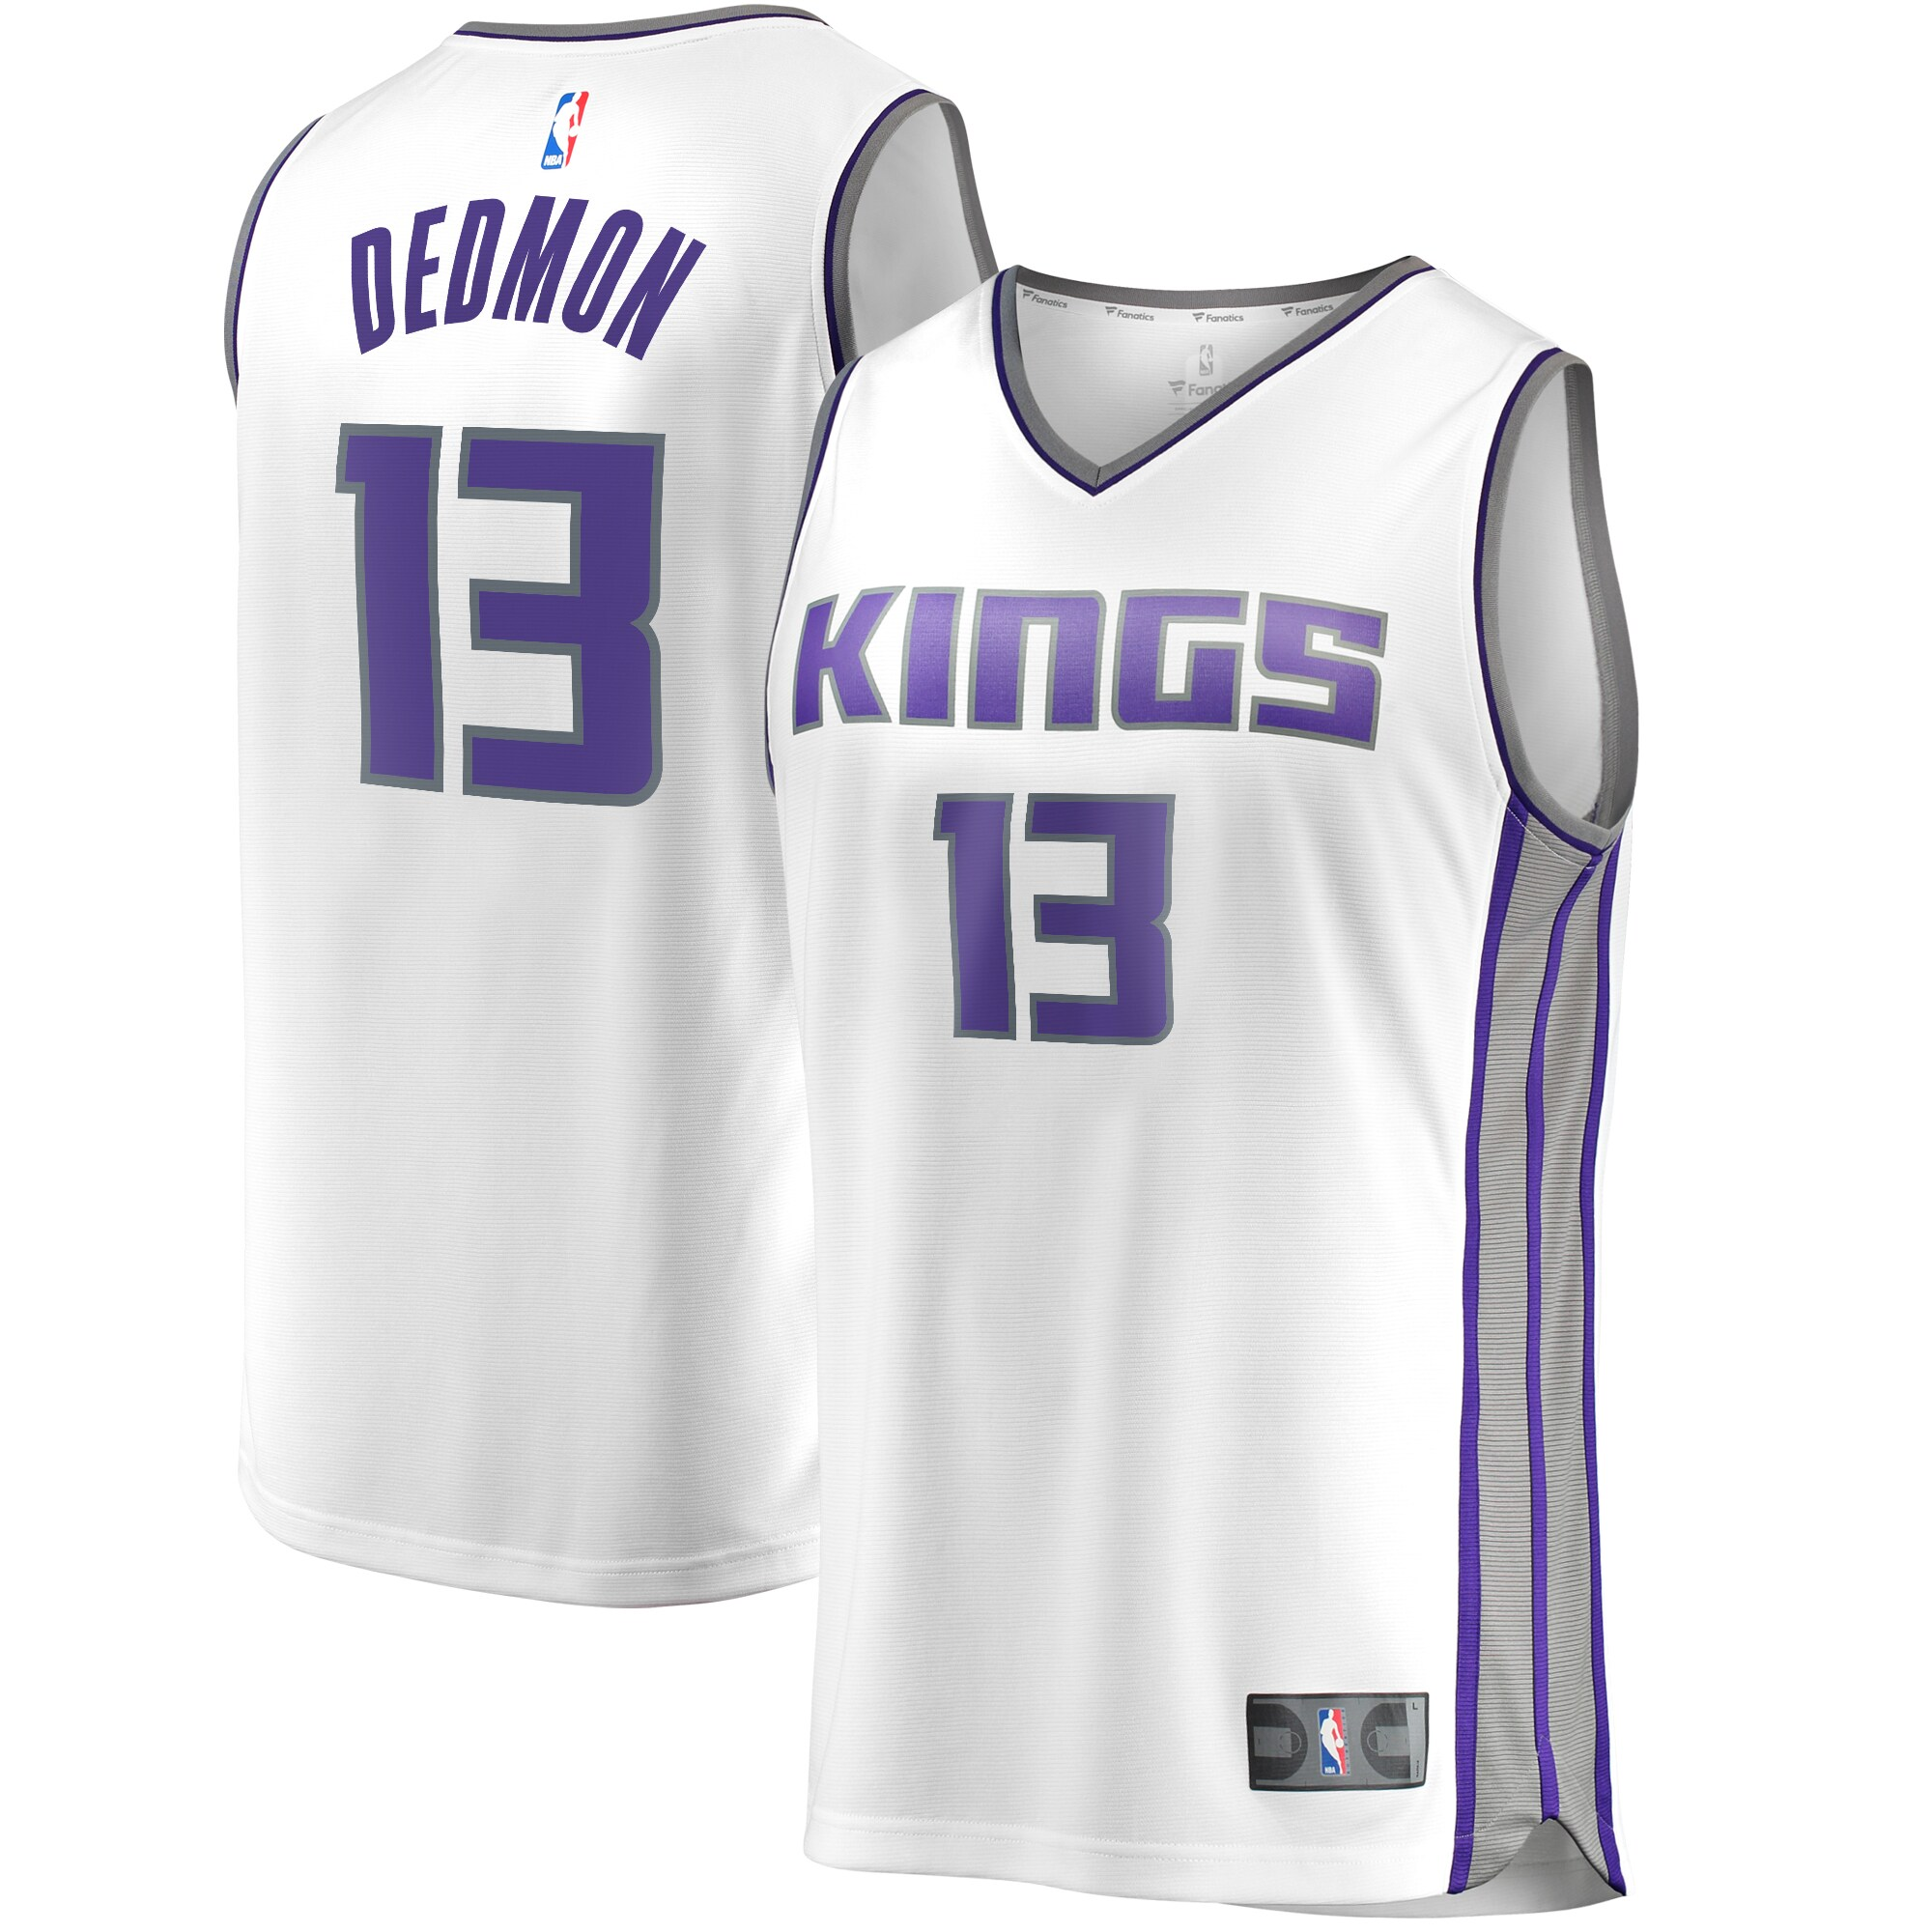 Dewayne Dedmon Sacramento Kings Fanatics Branded Fast Break Replica Player Jersey White - Association Edition